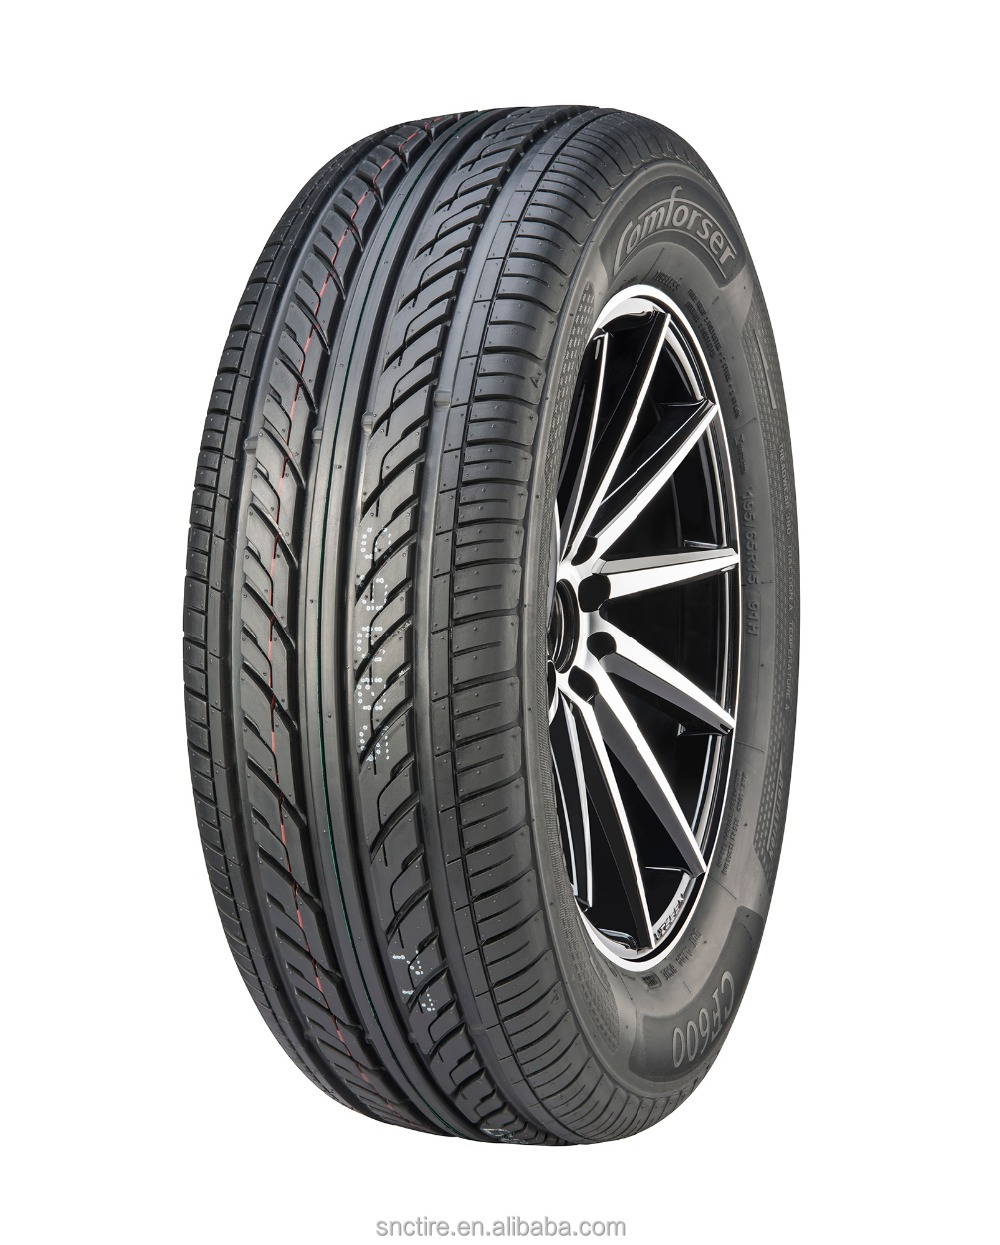 comforser car tyre made by china famous tire manufacturers buy tire manufacturers tyres car. Black Bedroom Furniture Sets. Home Design Ideas